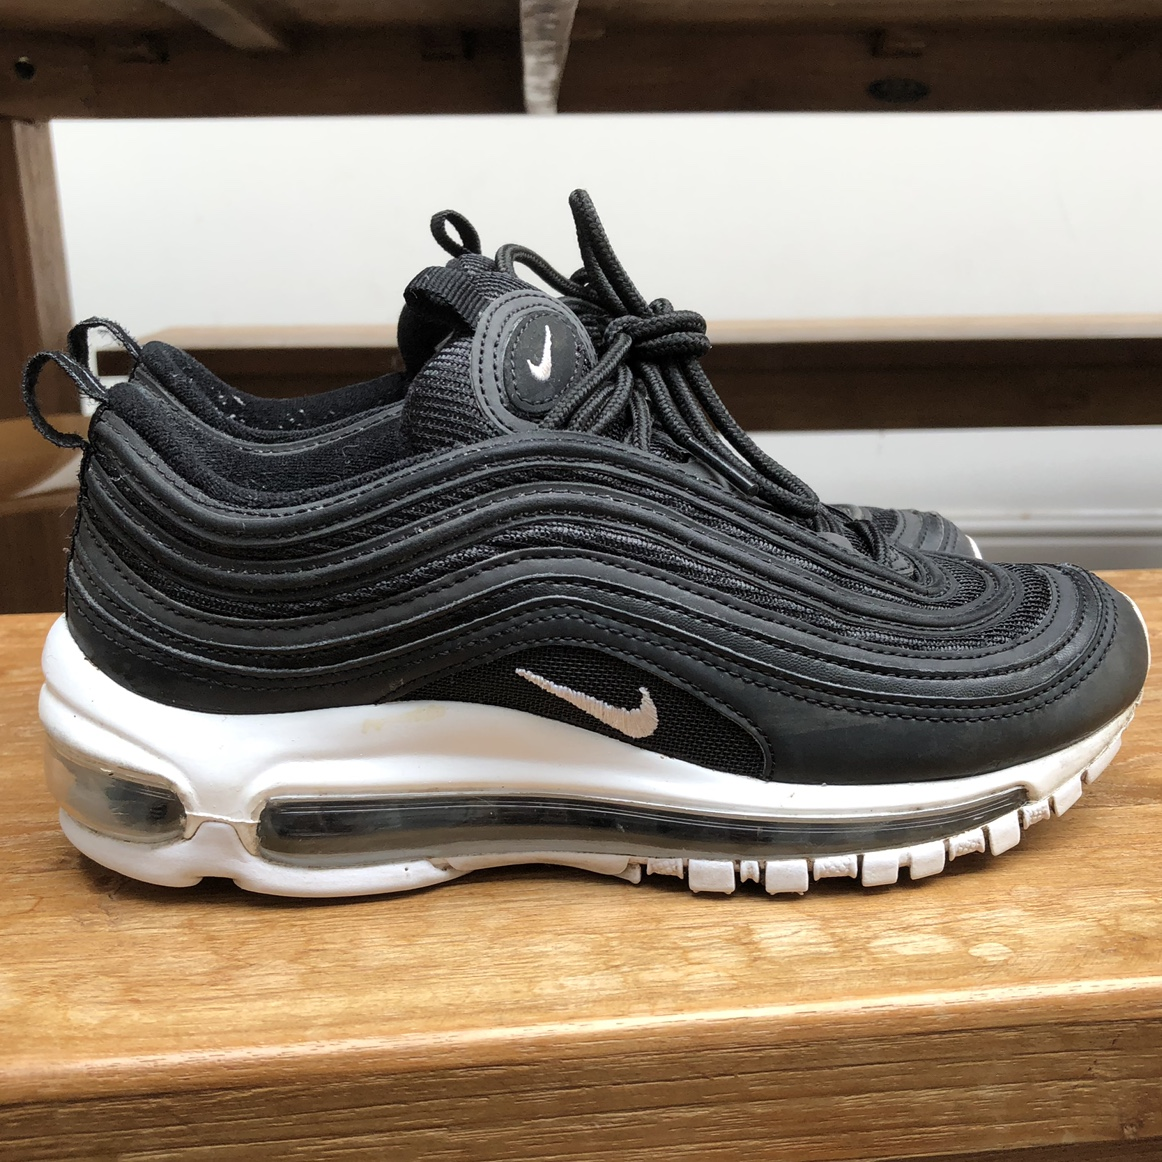 nike air max 97s black and white size 3